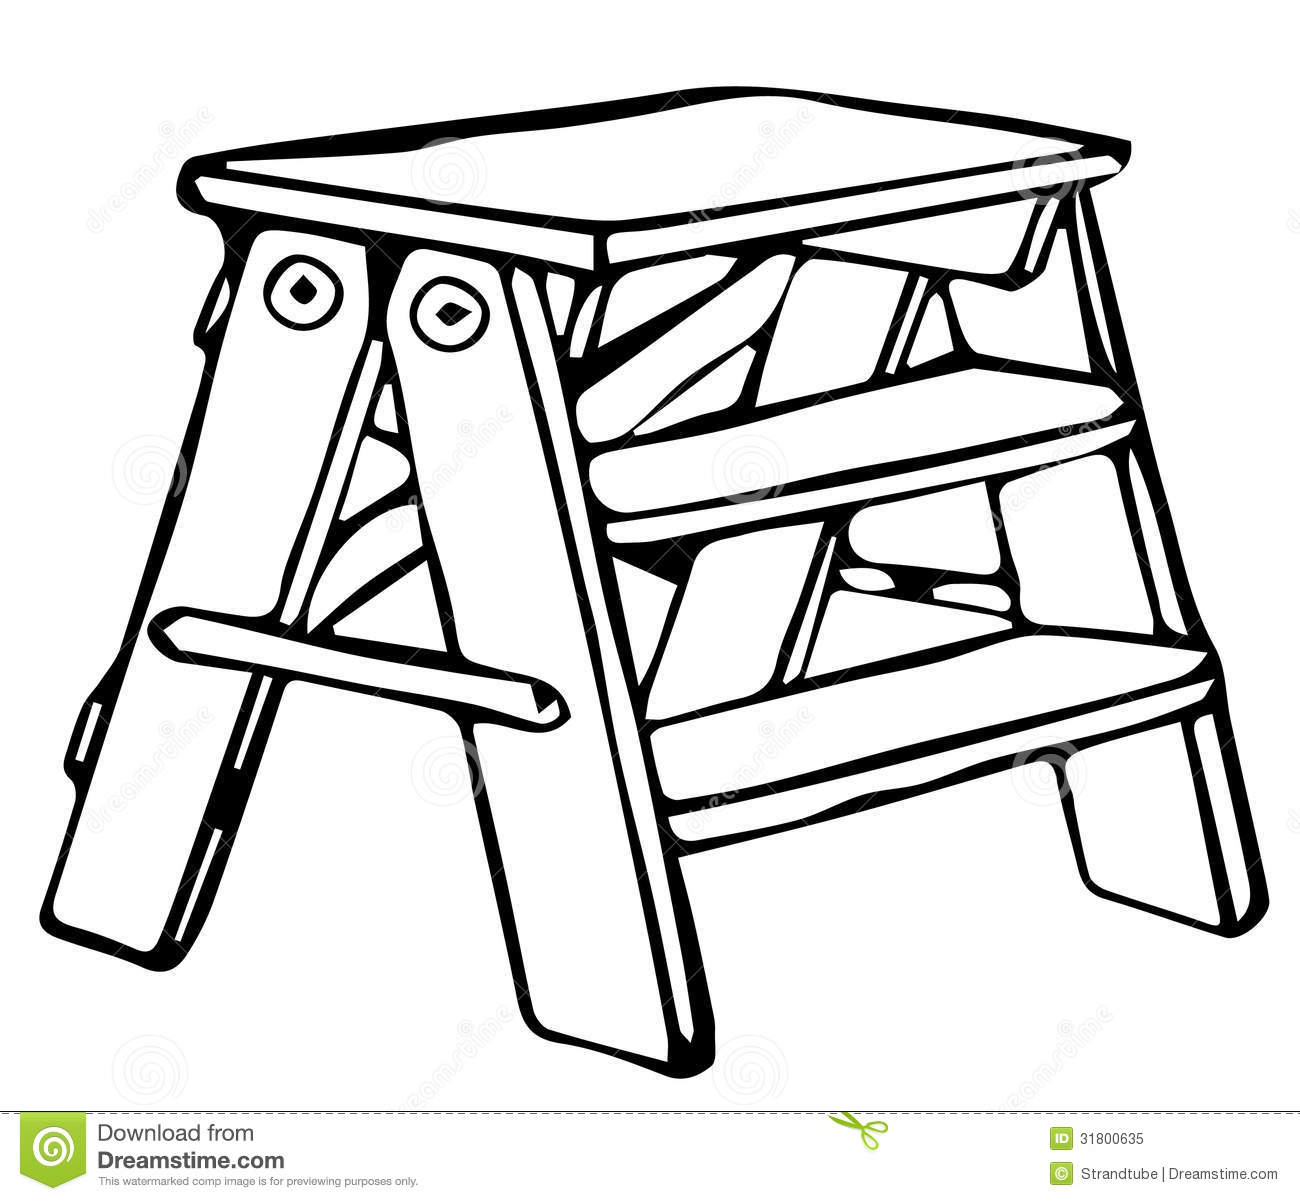 Royalty Free Stock Photo: Line Drawing of Step Ladder/ Eps